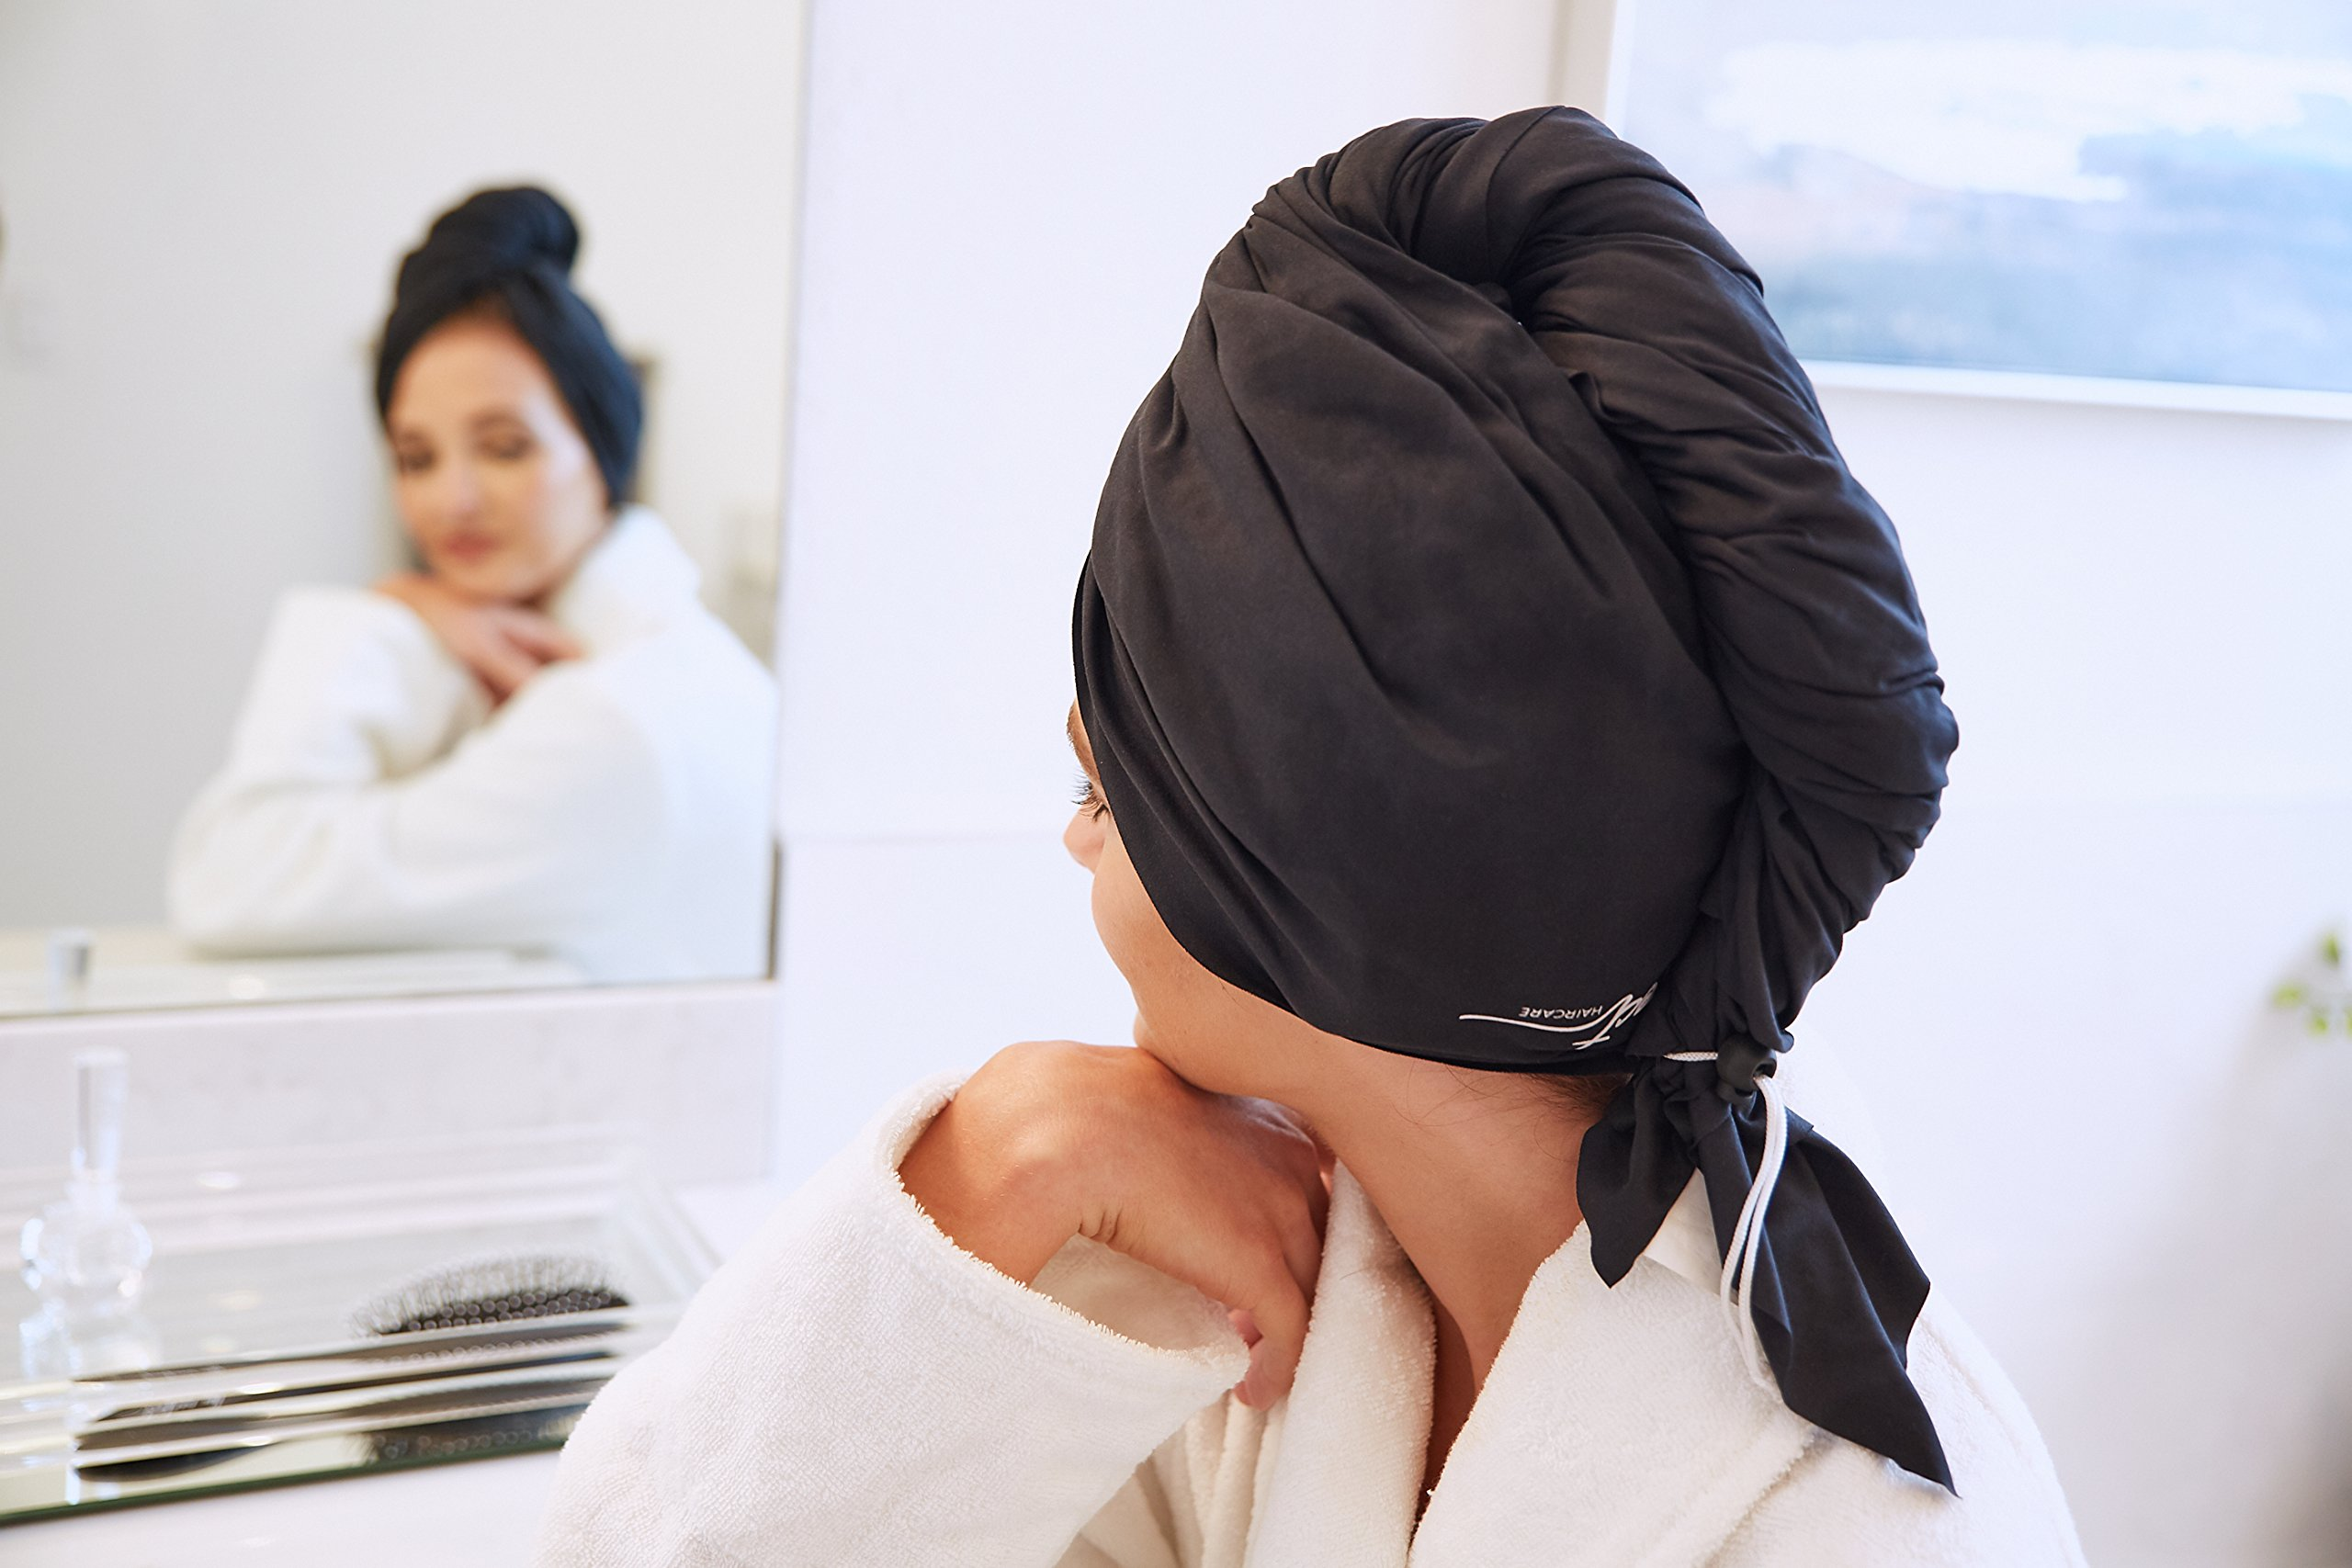 The Perfect Microfiber Hair Towel Wrap - Absorbent Turban for Fast, Anti-Frizz Drying - Never Falls Off Curly or Straight Hair - (38.5''x27.5'') Includes Wet or Dry Detangling Brush (Black) by The Perfect Haircare (Image #9)